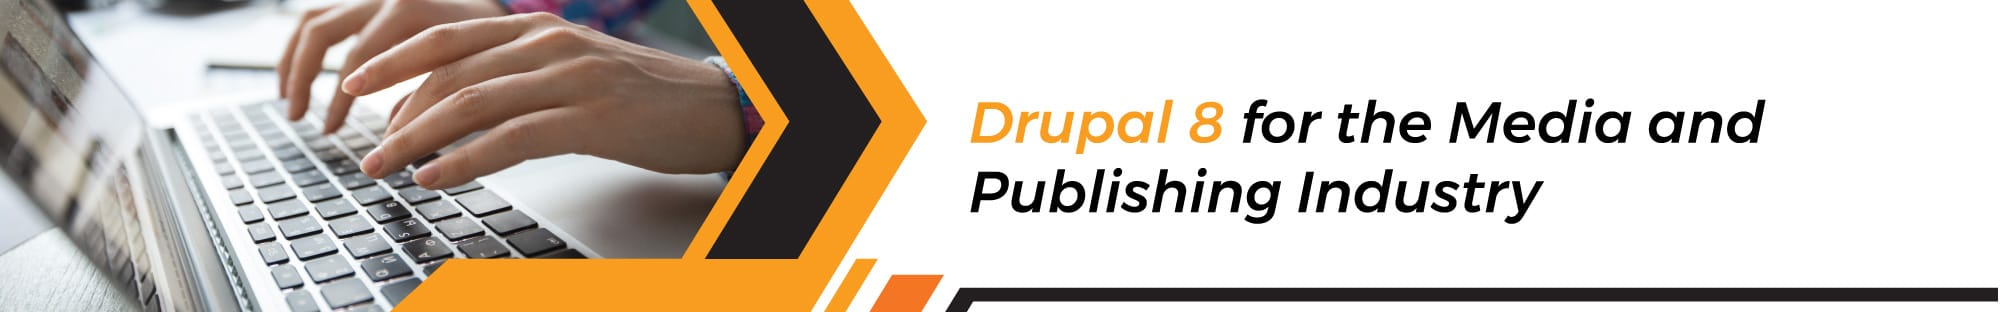 Drupal 8 in Media and Publishing